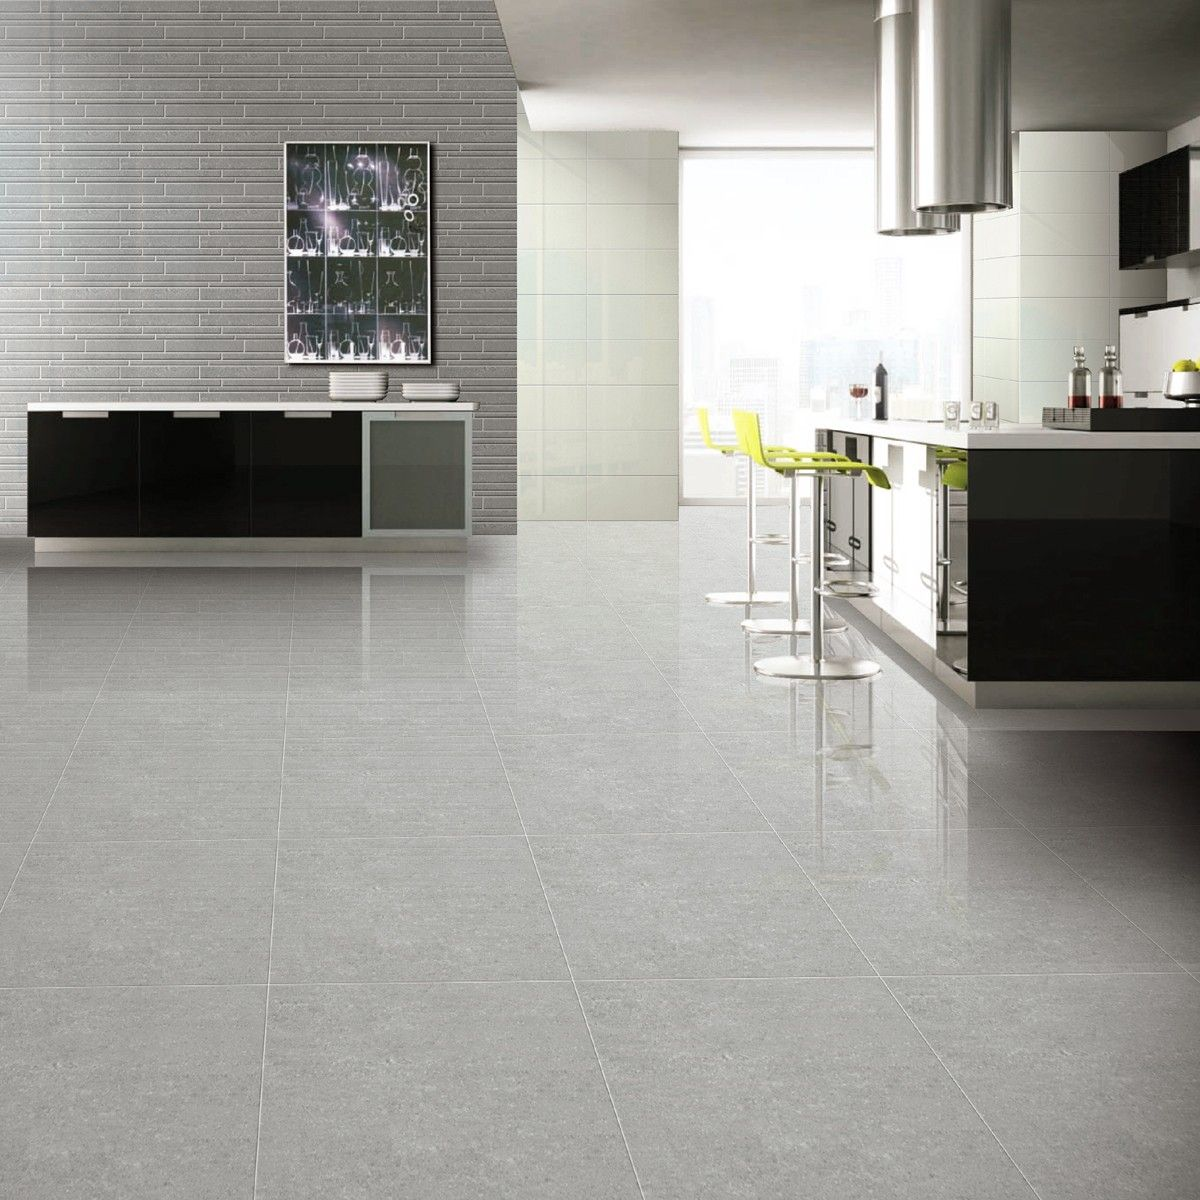 With A Beautiful Polished Finish This Porcelain Tile Is Perfect For  Reflecting Light Around Your Living Space Bringing A Bright, Modern ...